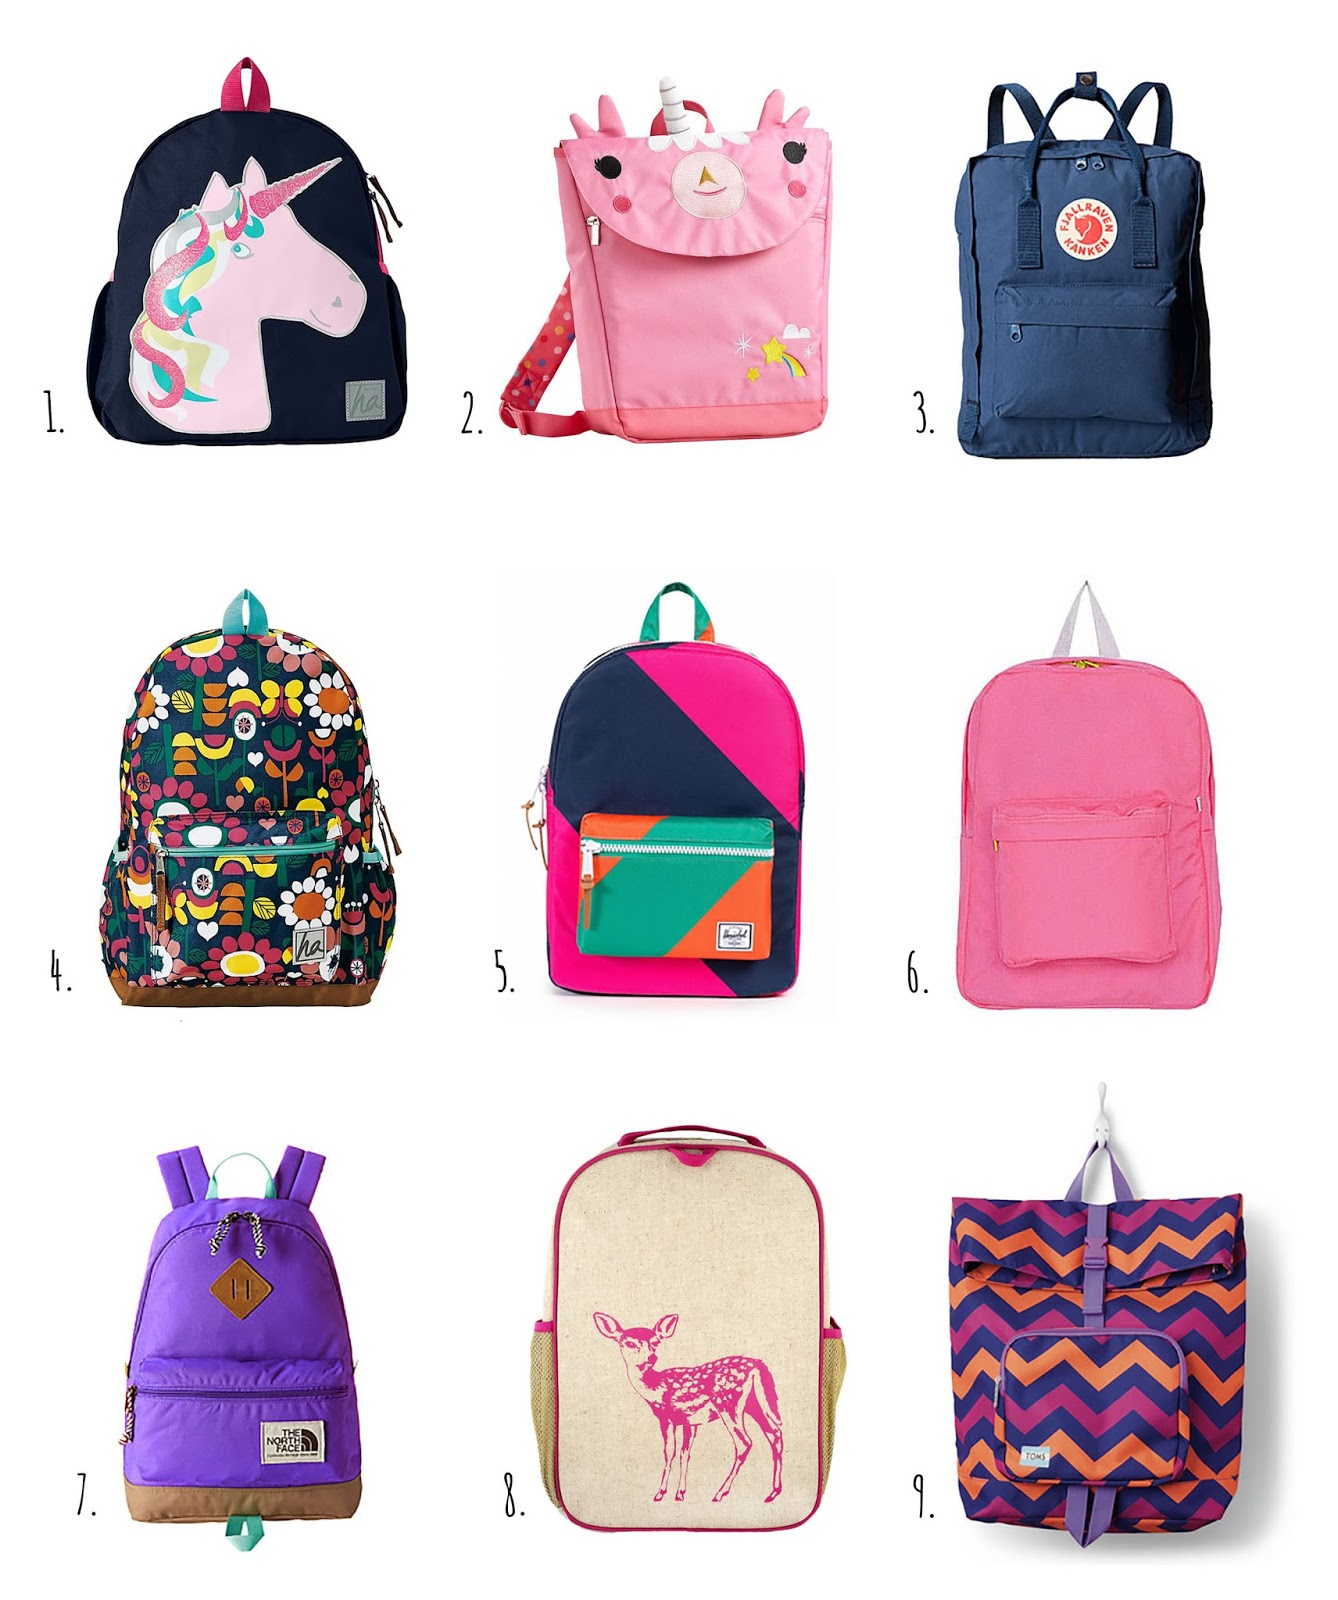 Let it be goodie bag fillers, back to school erasers and anything in High Sierra Loop Backpack, Great High School, College Backpack, School Bag, Tablet Sleeve, Perfect Travel, Men Women's Backpack. by High Sierra. $ - $ $ 26 $ 00 Prime. FREE Shipping on eligible orders.